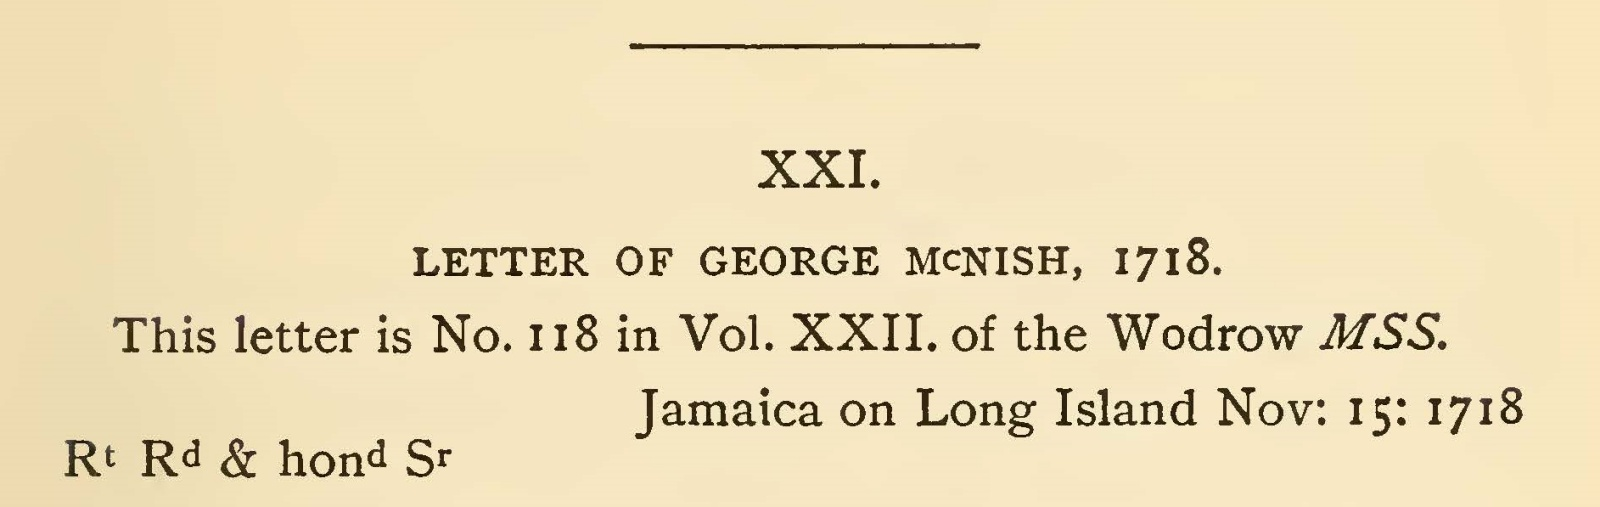 McNish, George, 1718 Letter Title Page.jpg